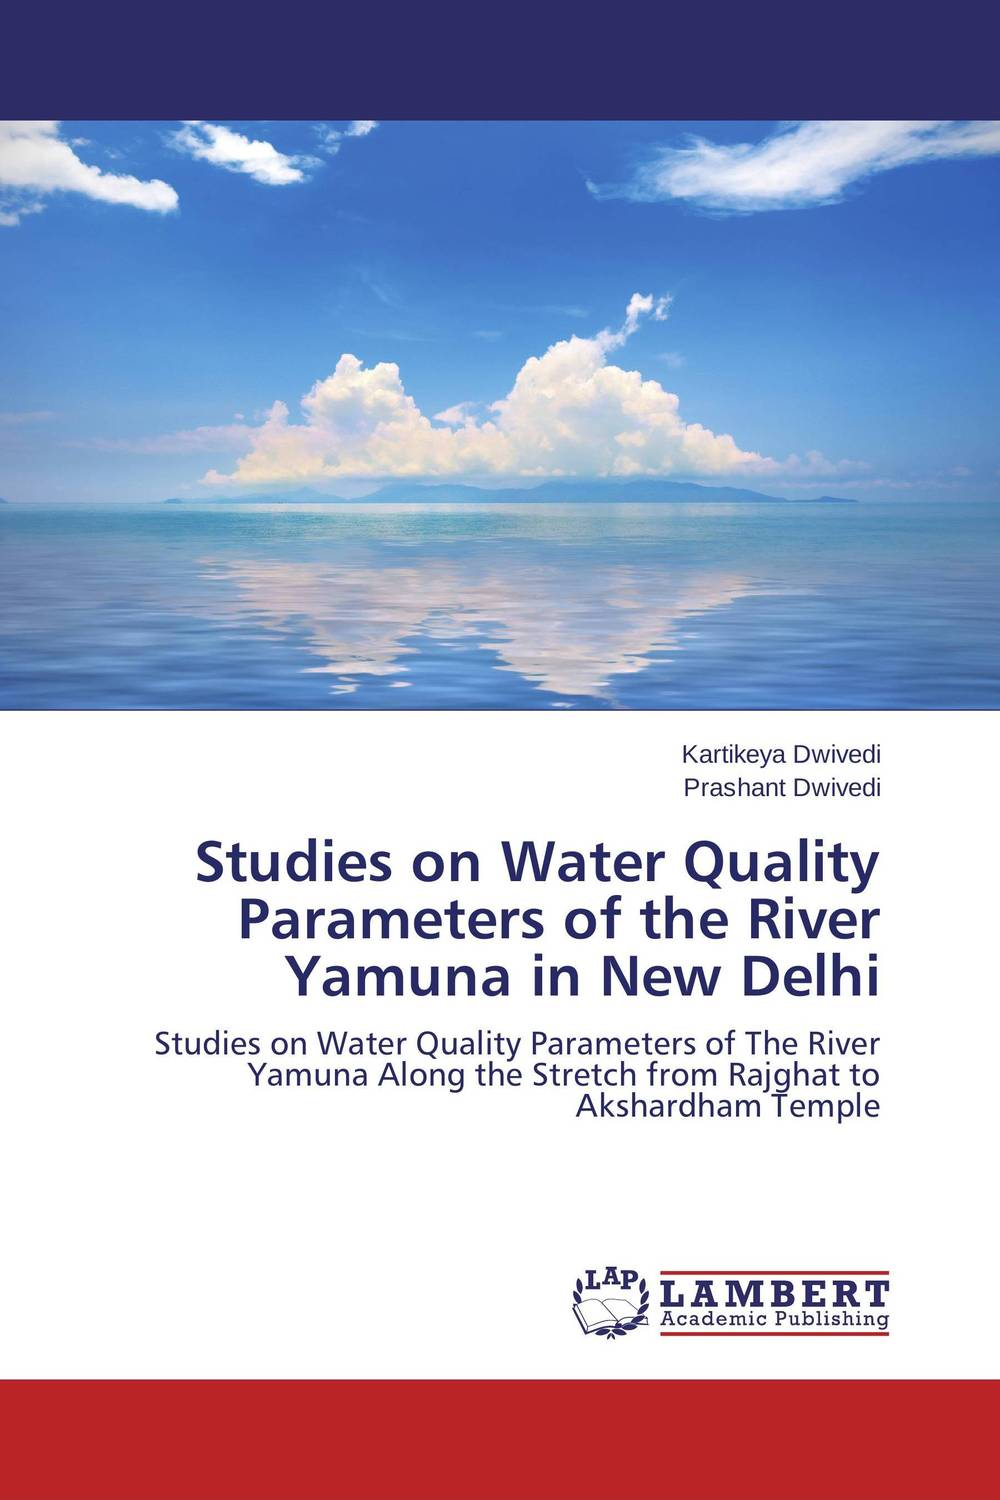 Studies on Water Quality Parameters of the River Yamuna in New Delhi effects of dams on river water quality